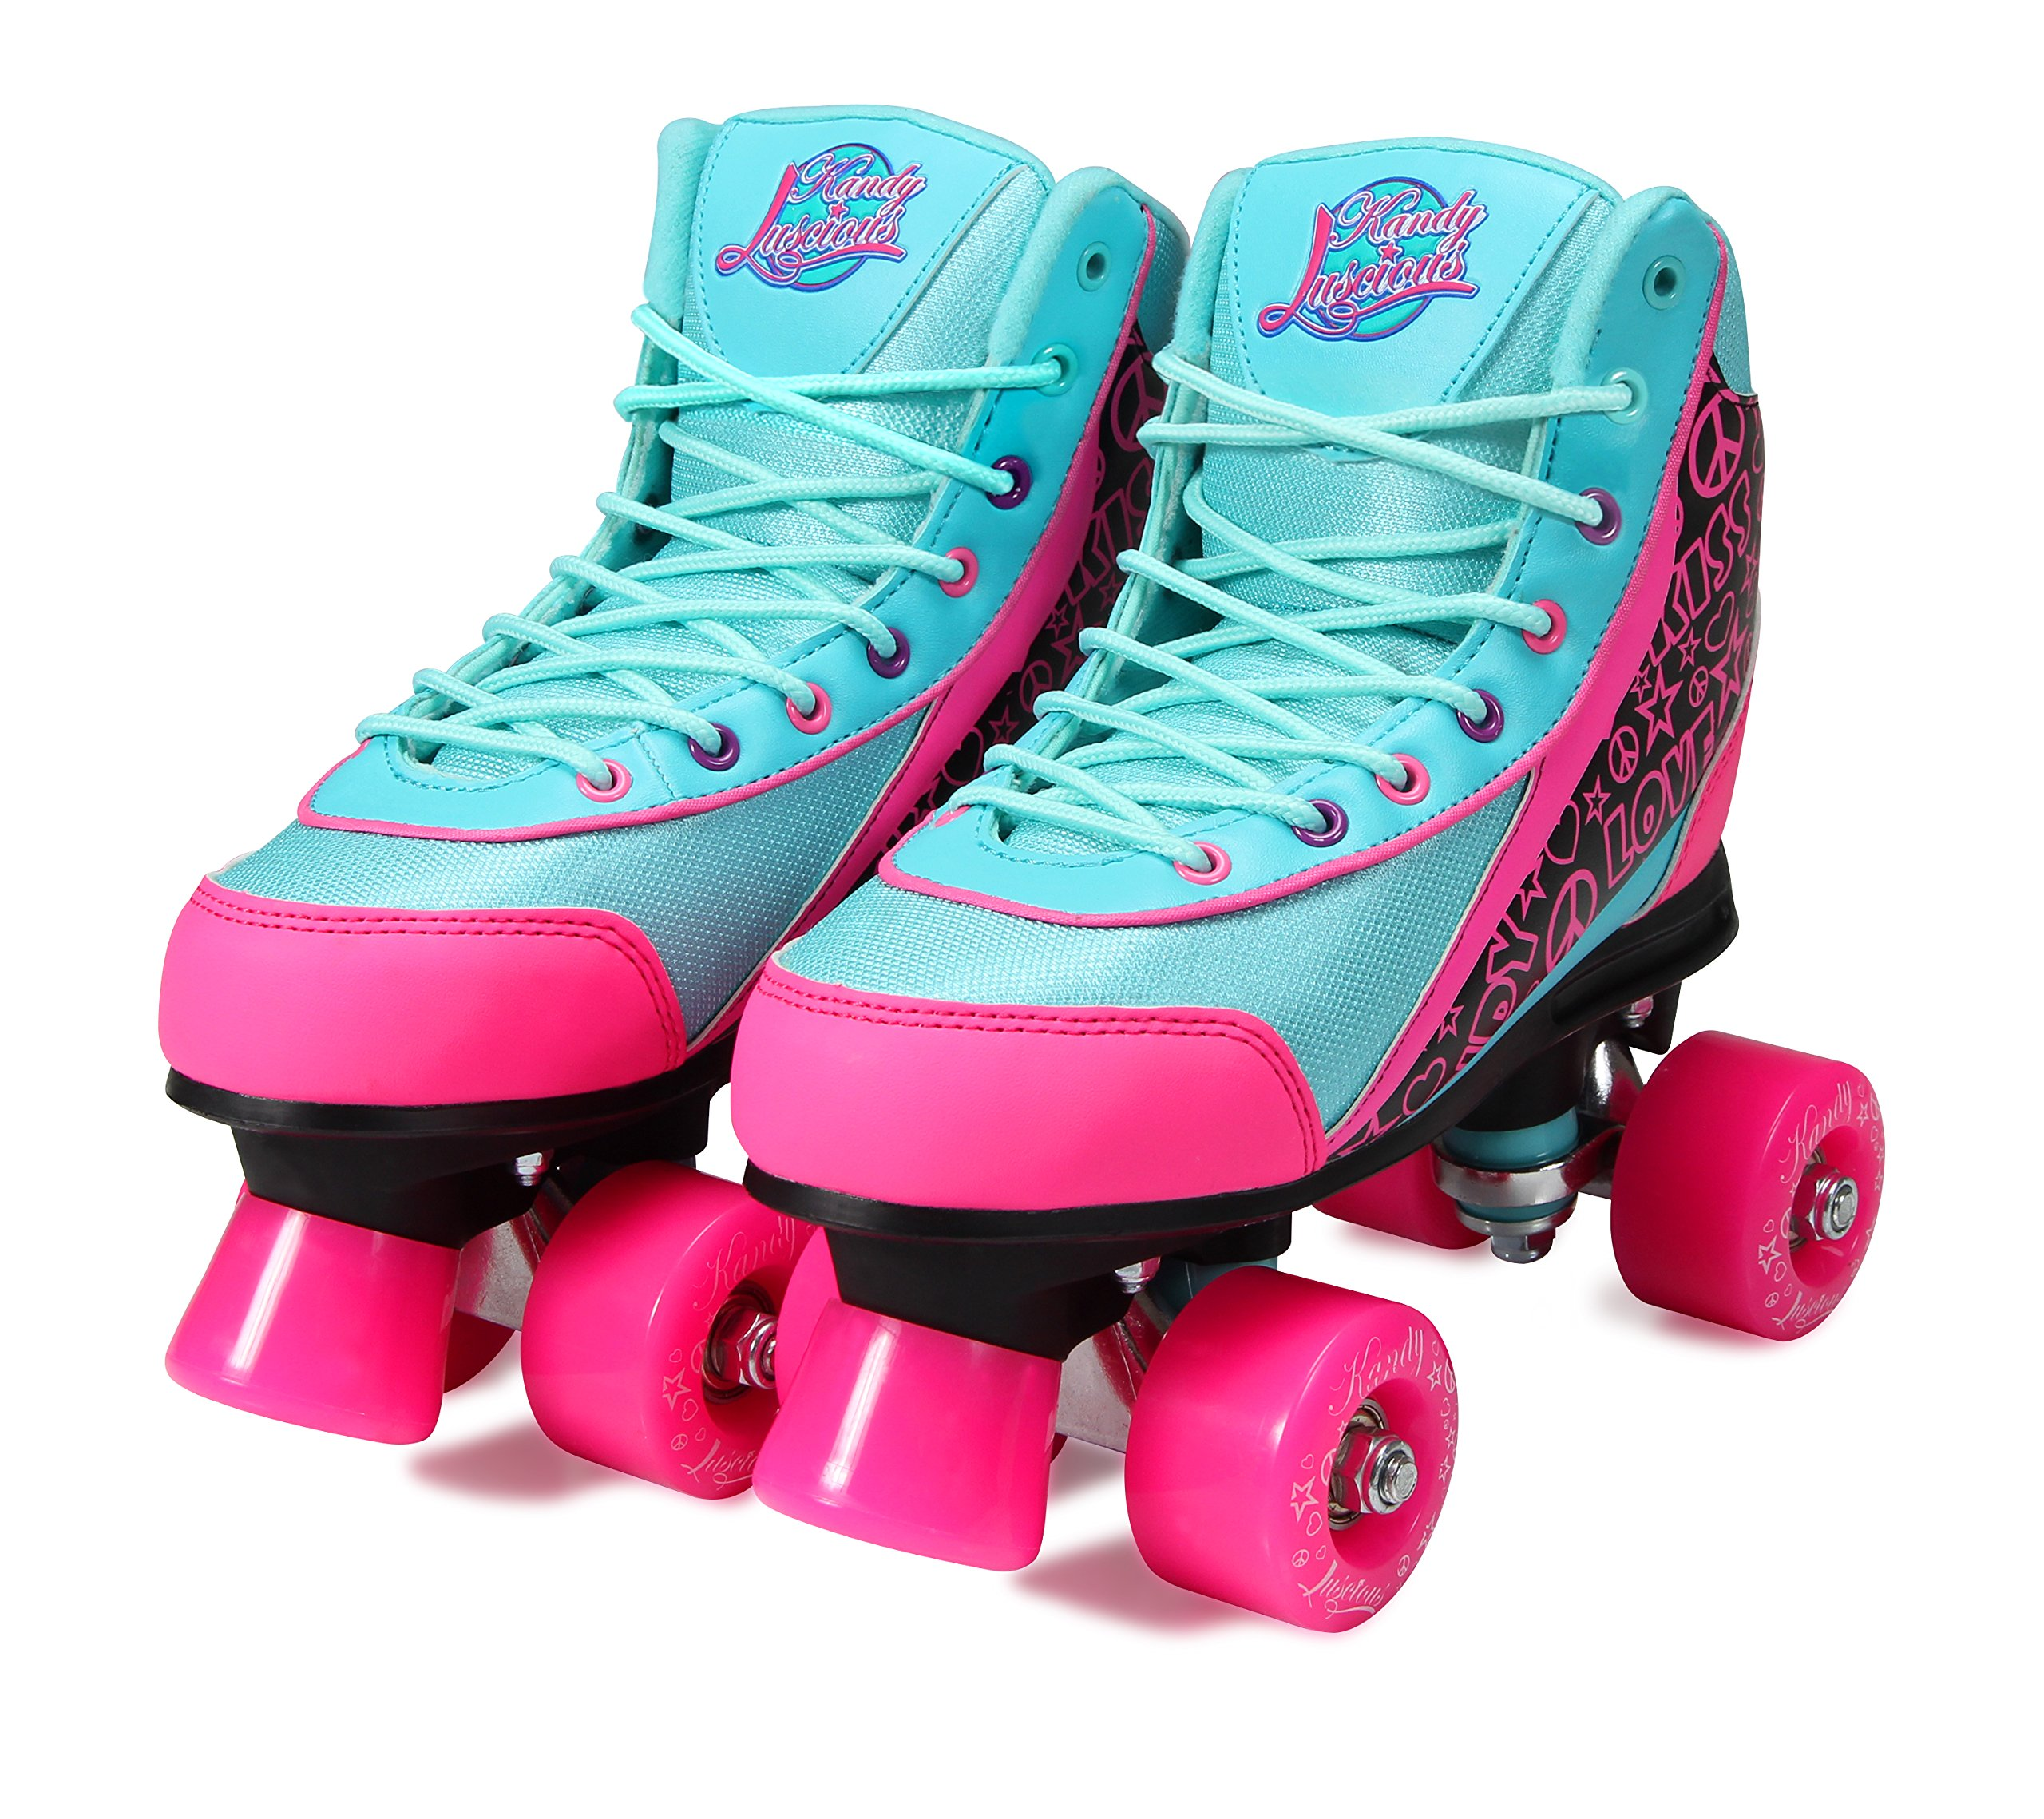 Kandy-Luscious Kid's Roller Skates - Comfortable Children's Skates with Fun Colors & Designs (Summer Days Teal and Pink) (Size 1)